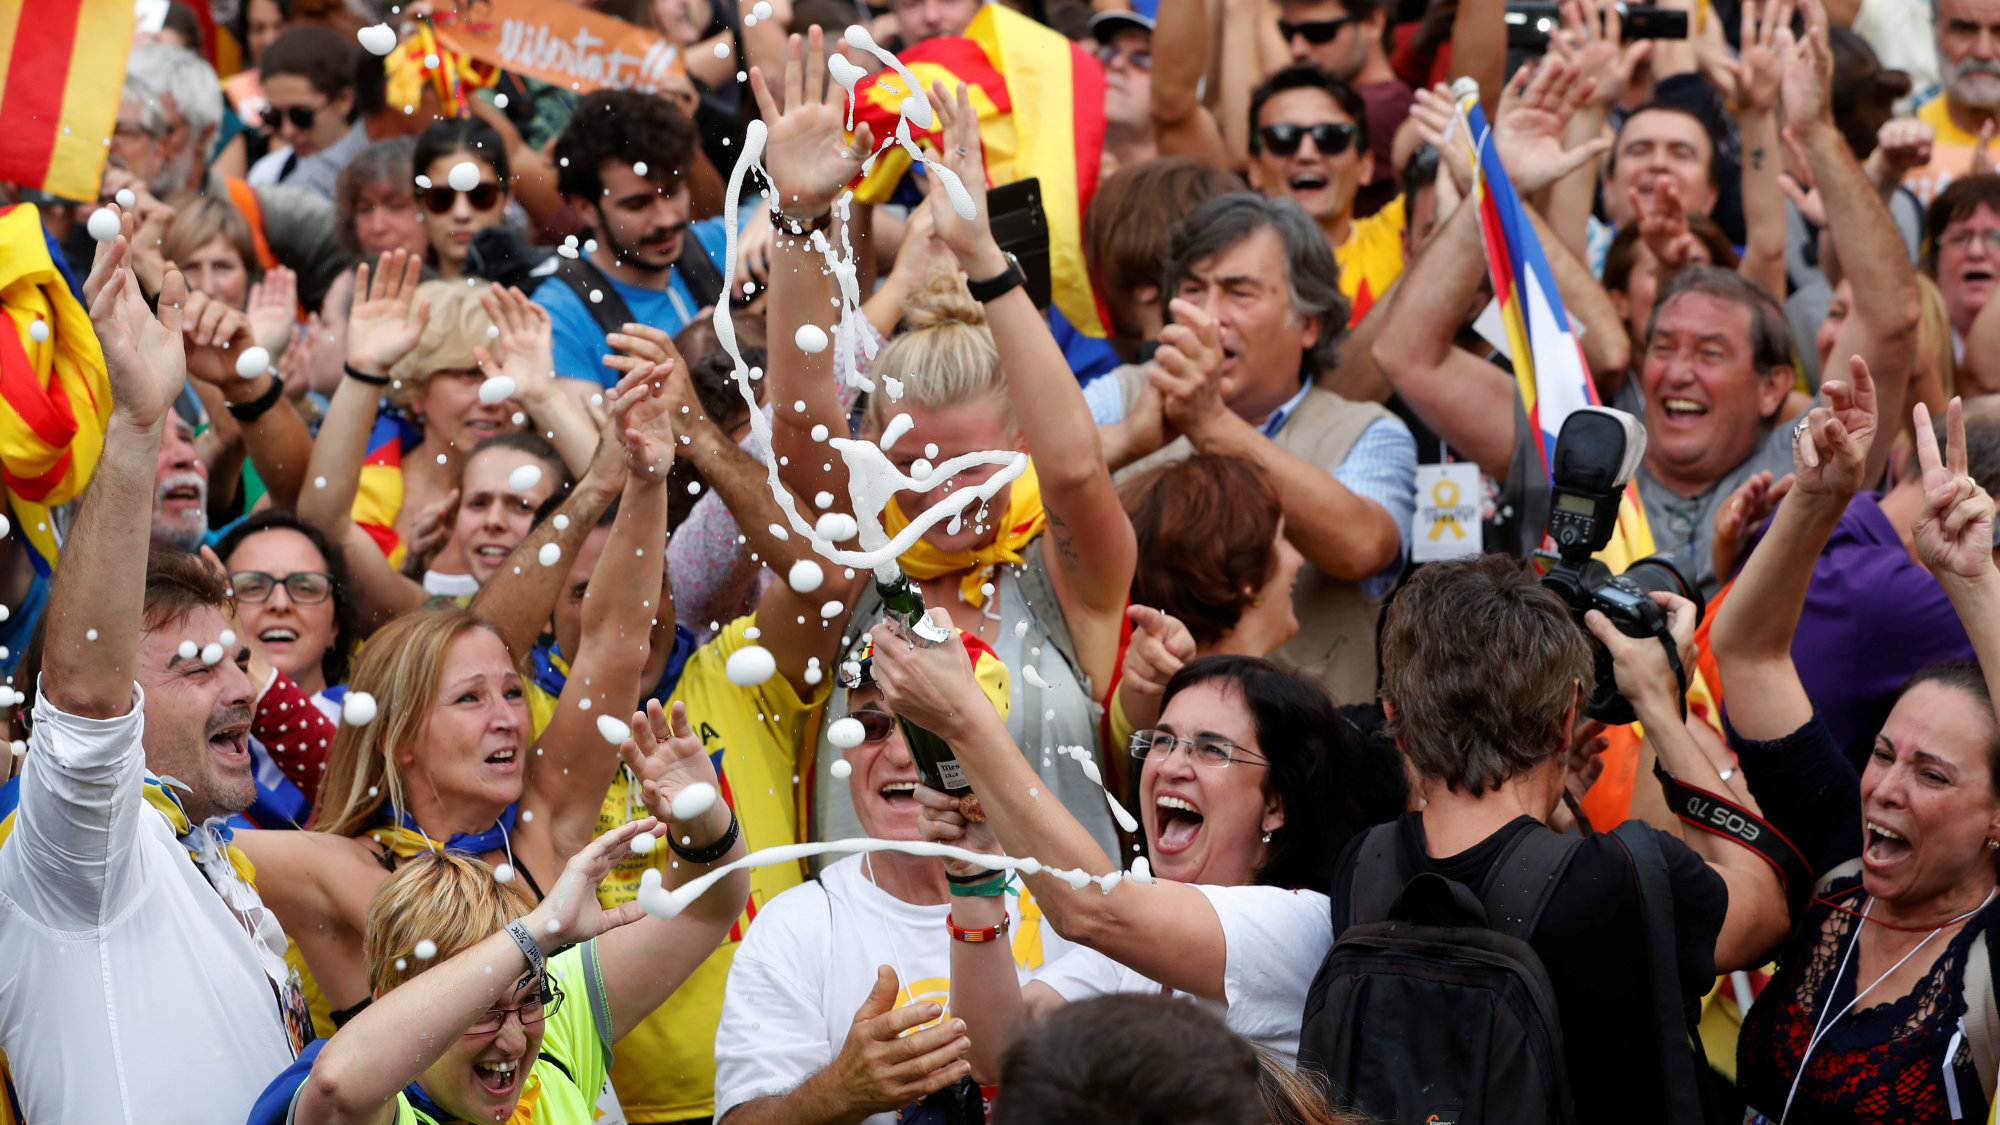 People celebrate after the Catalan regional parliament passes the vote of independence from Spain in Barcelona, Spain October 27, 2017